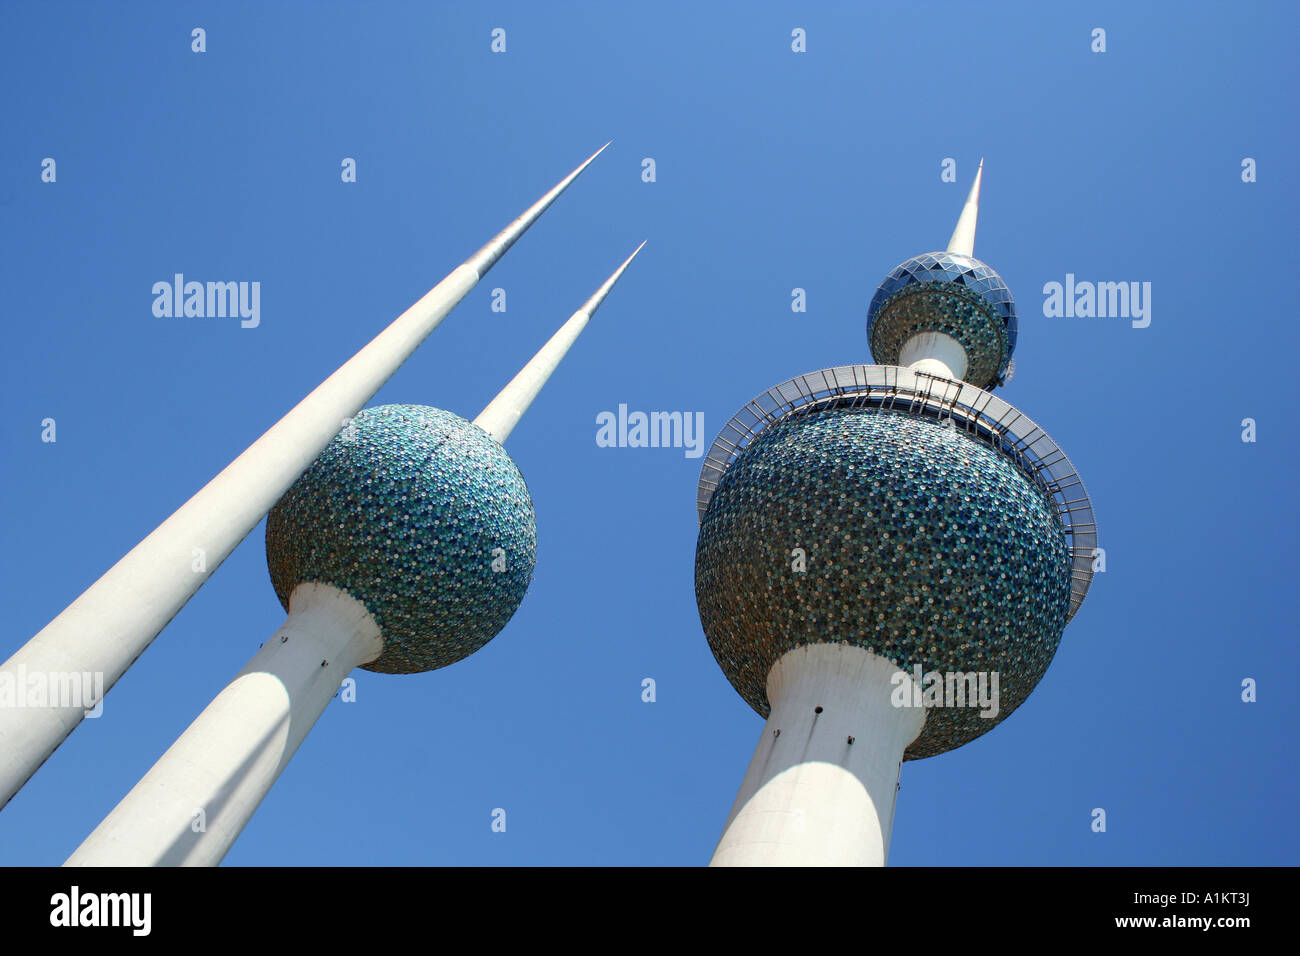 Kuwait towers in kuwait city - Stock Image